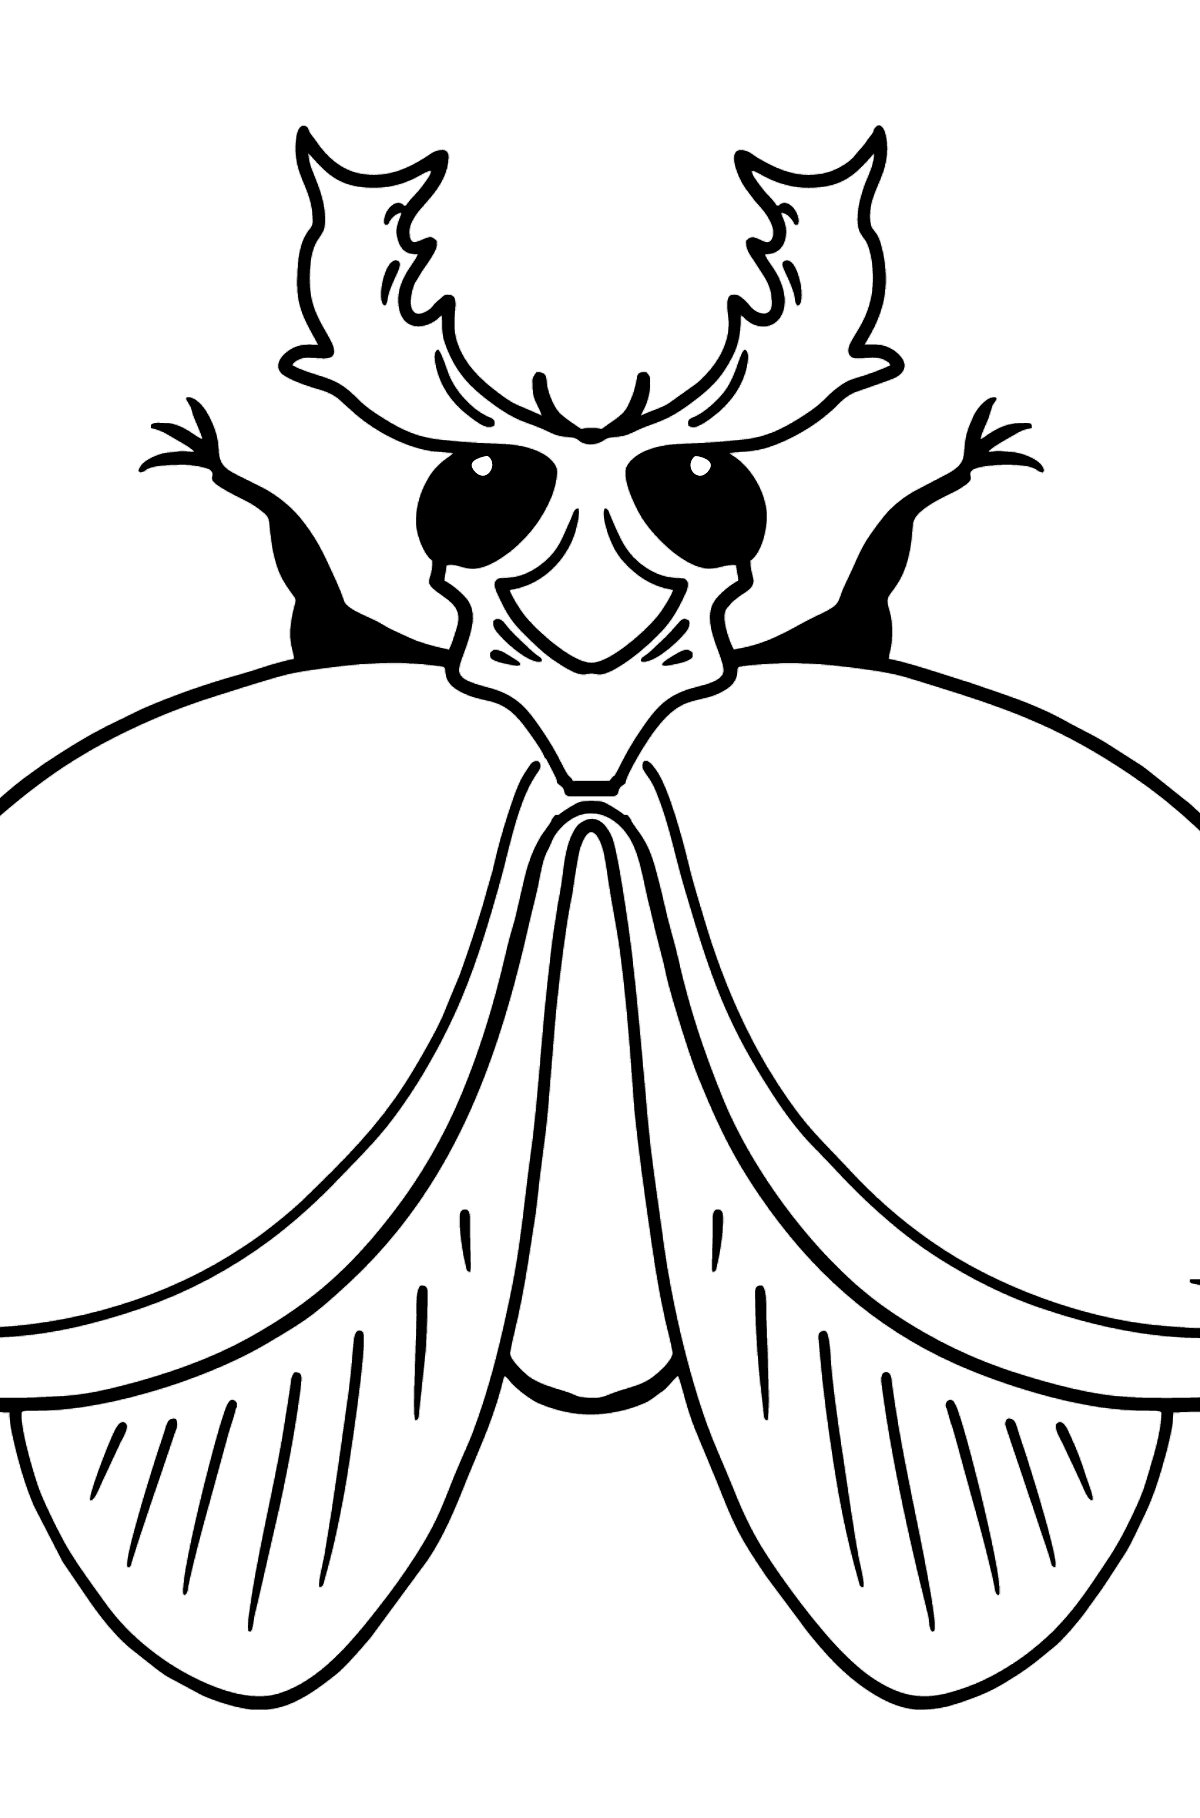 Beetle coloring page - Coloring Pages for Kids